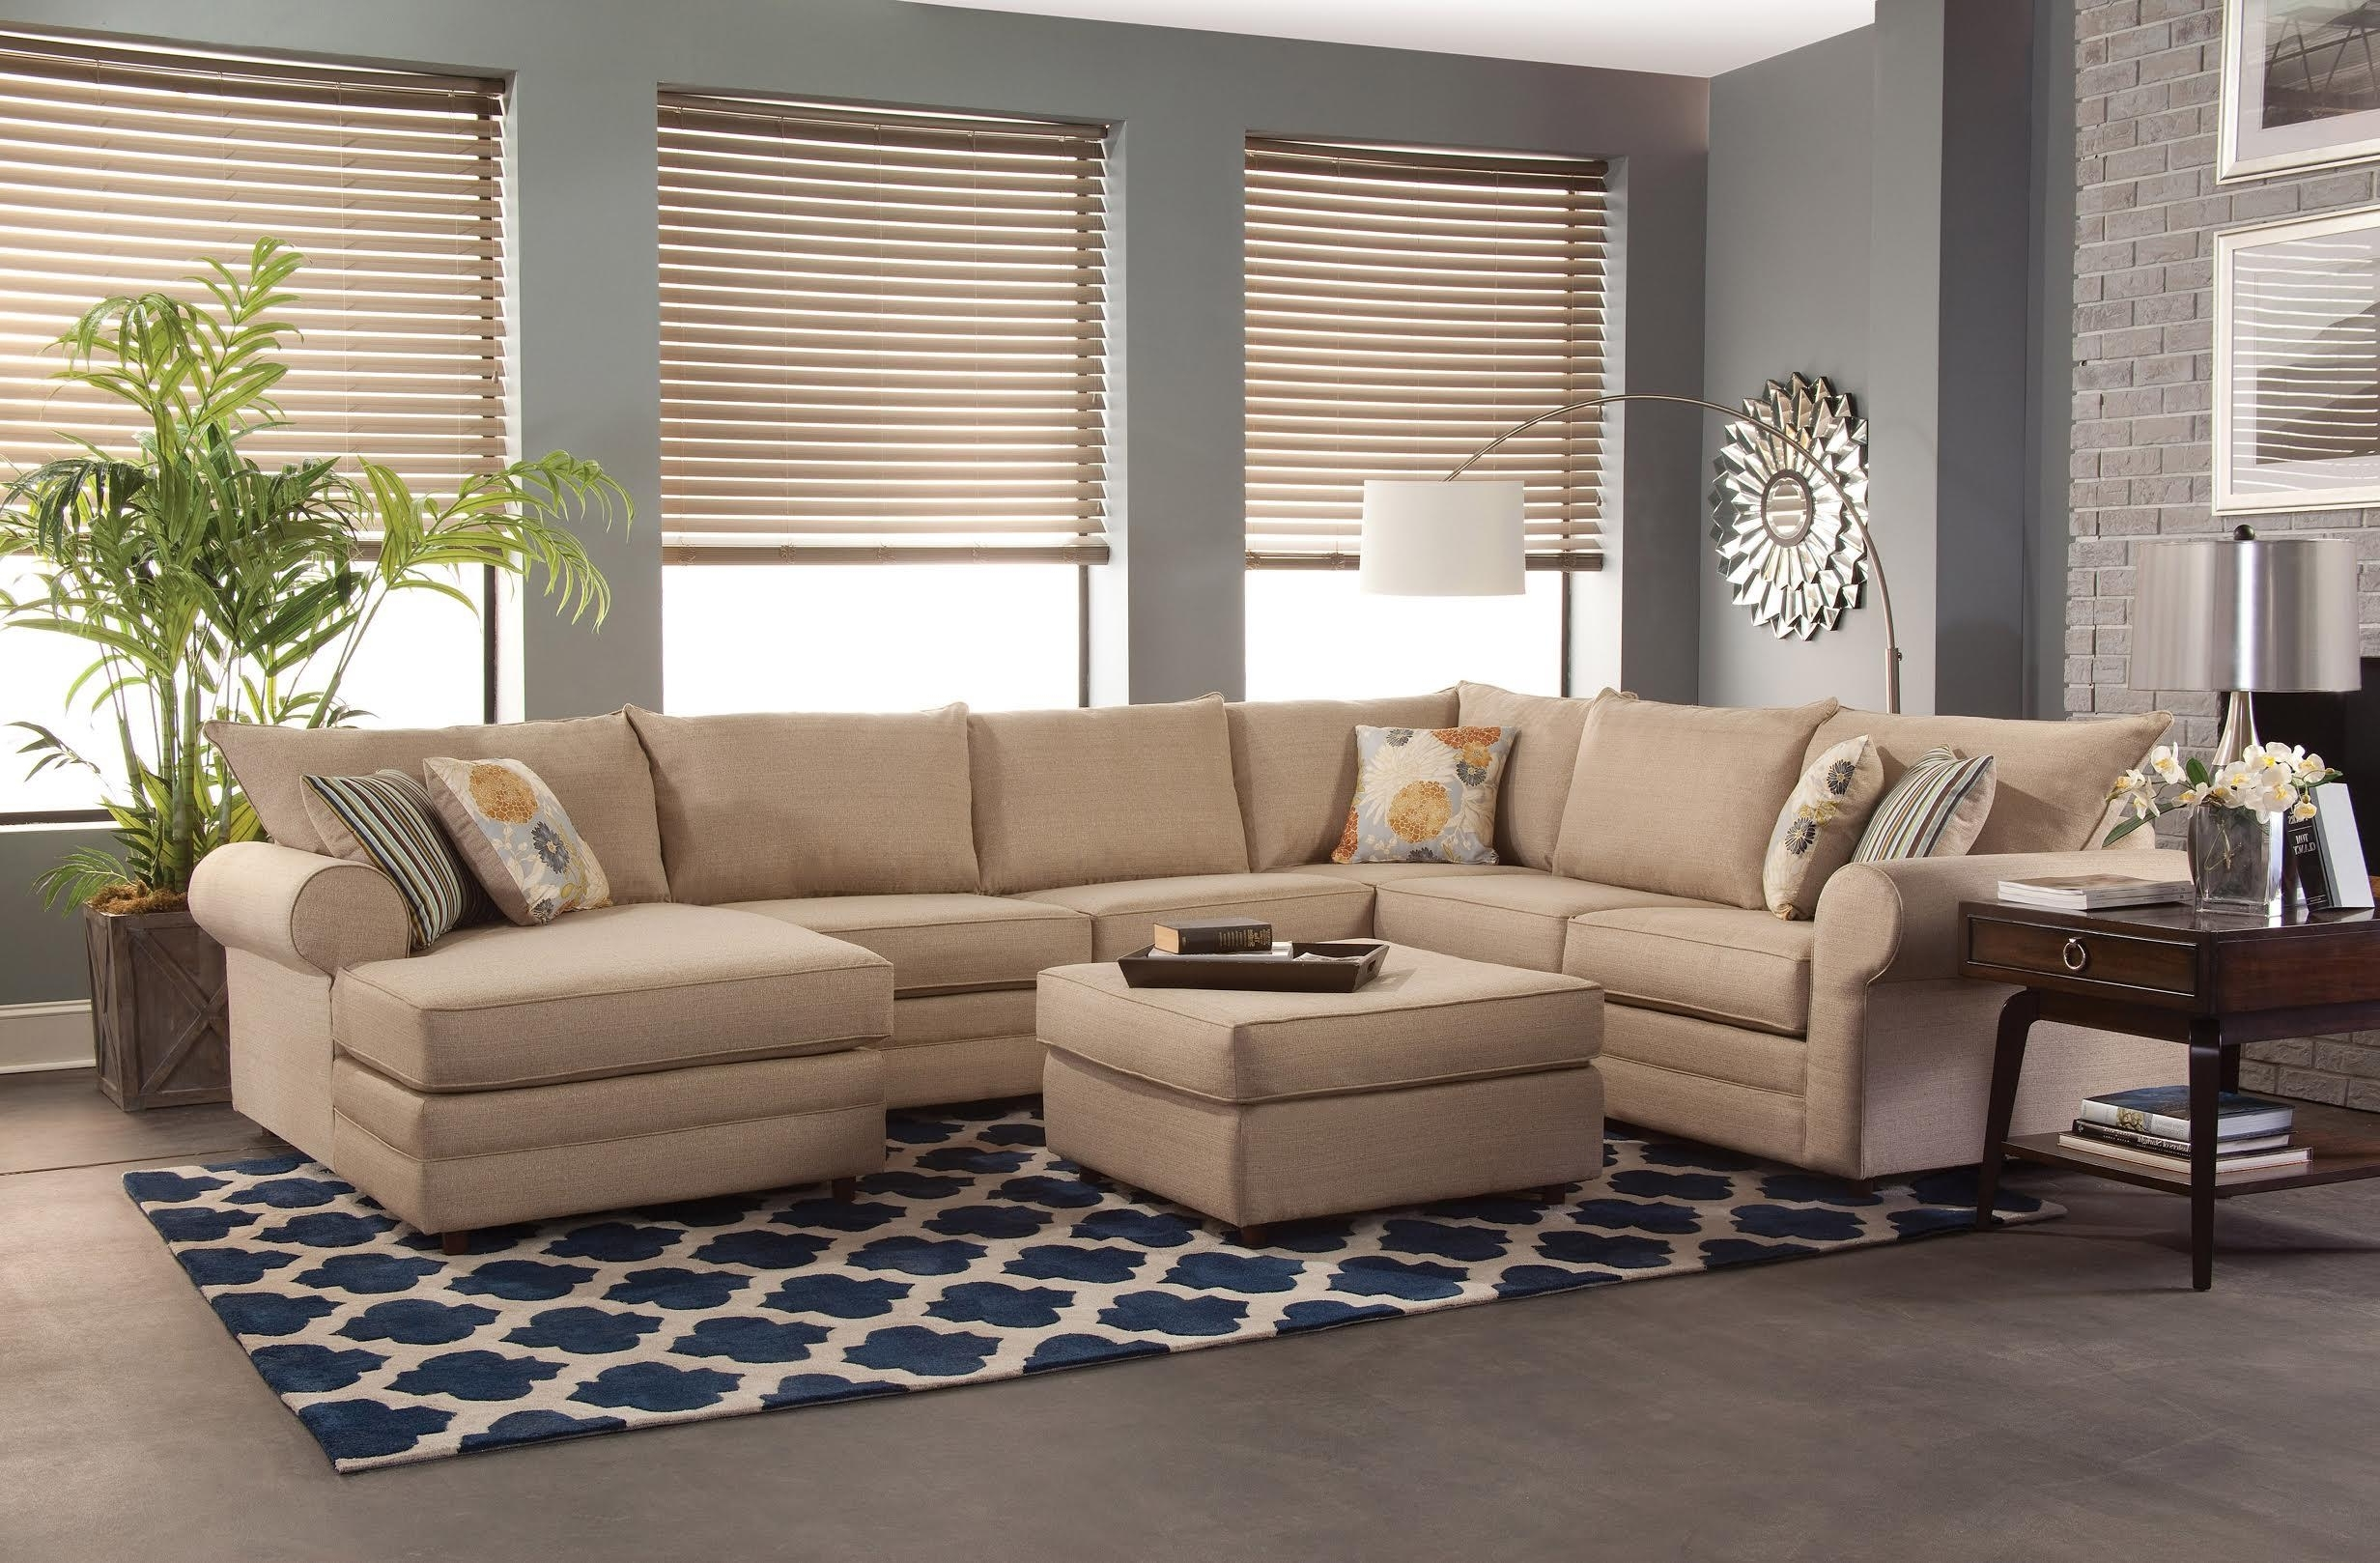 Belfort Essentials Monticello Casual Sectional Sofa (View 2 of 20)